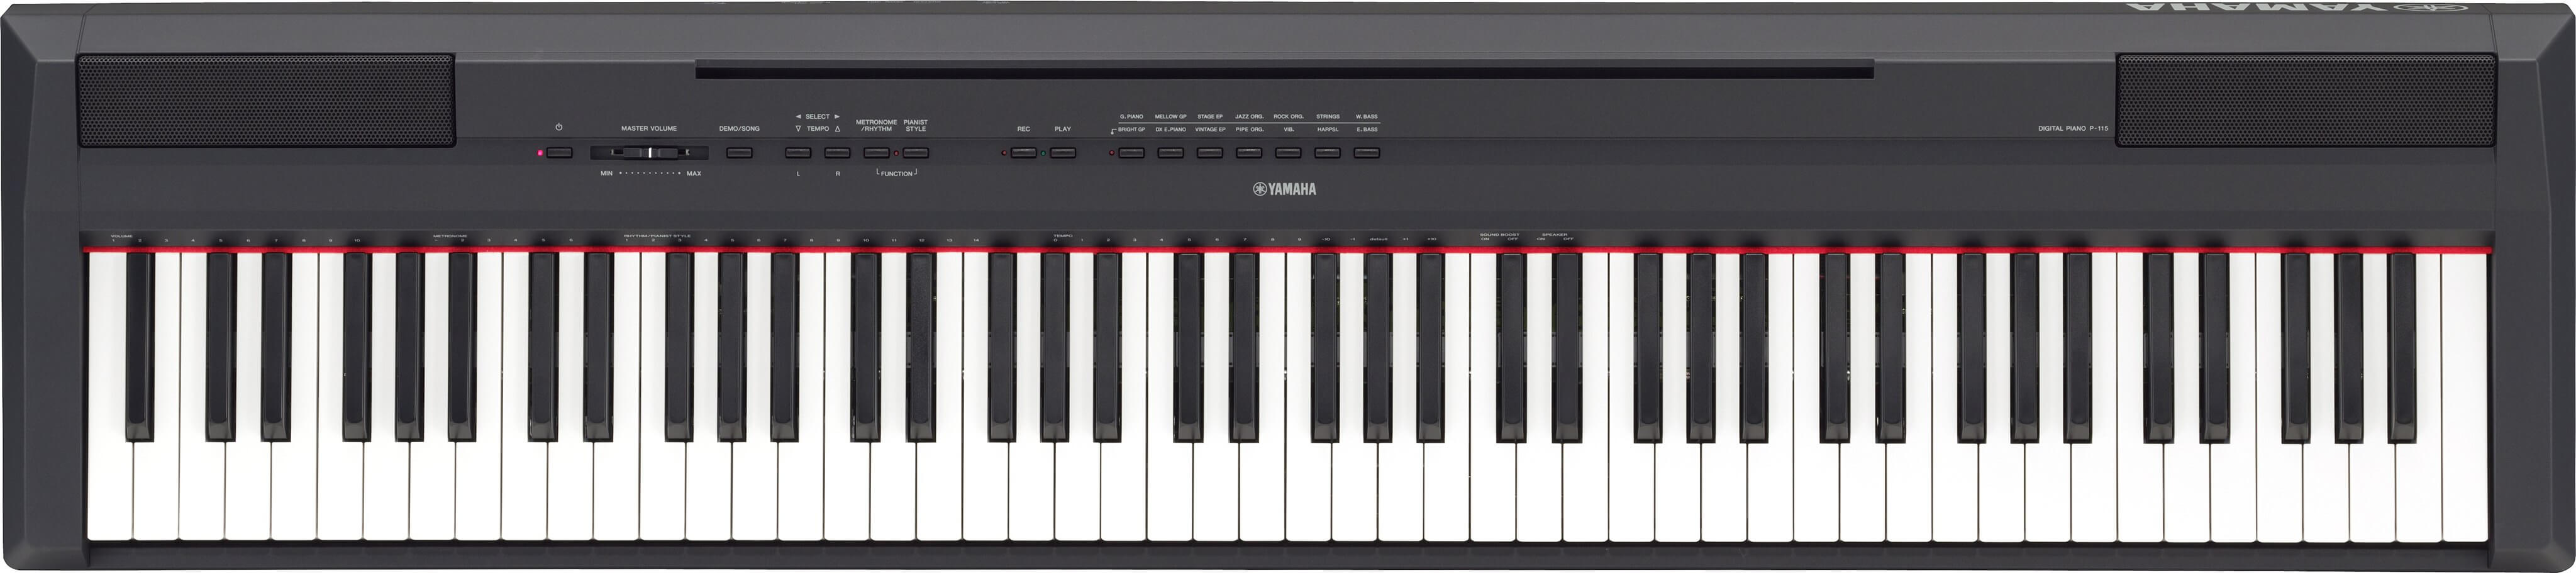 Piano Digital Yamaha P-115B Negro Mate